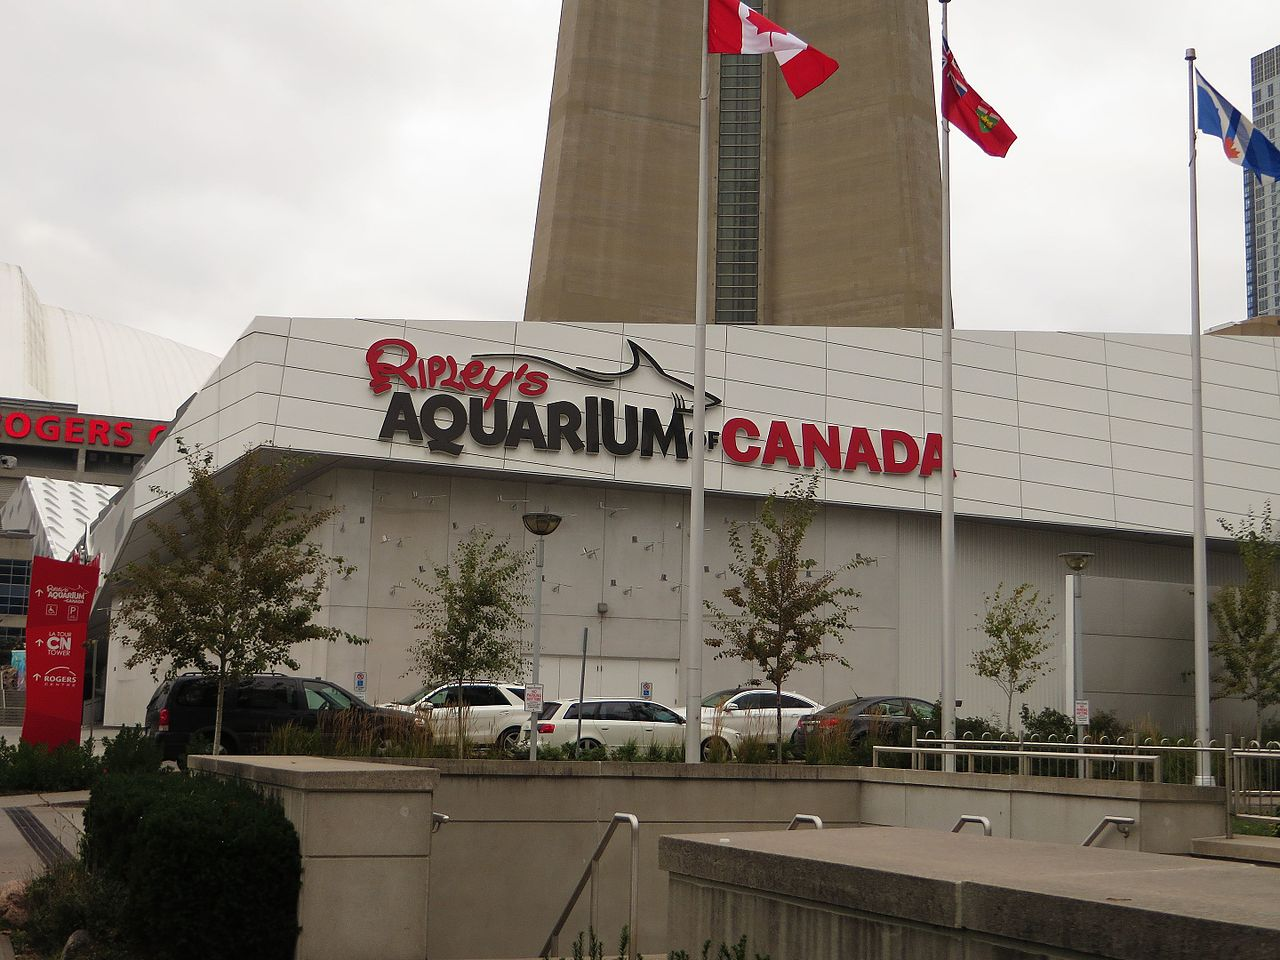 Photo of Ripley's Aquarium, right next to the CN Tower - Entertainment District